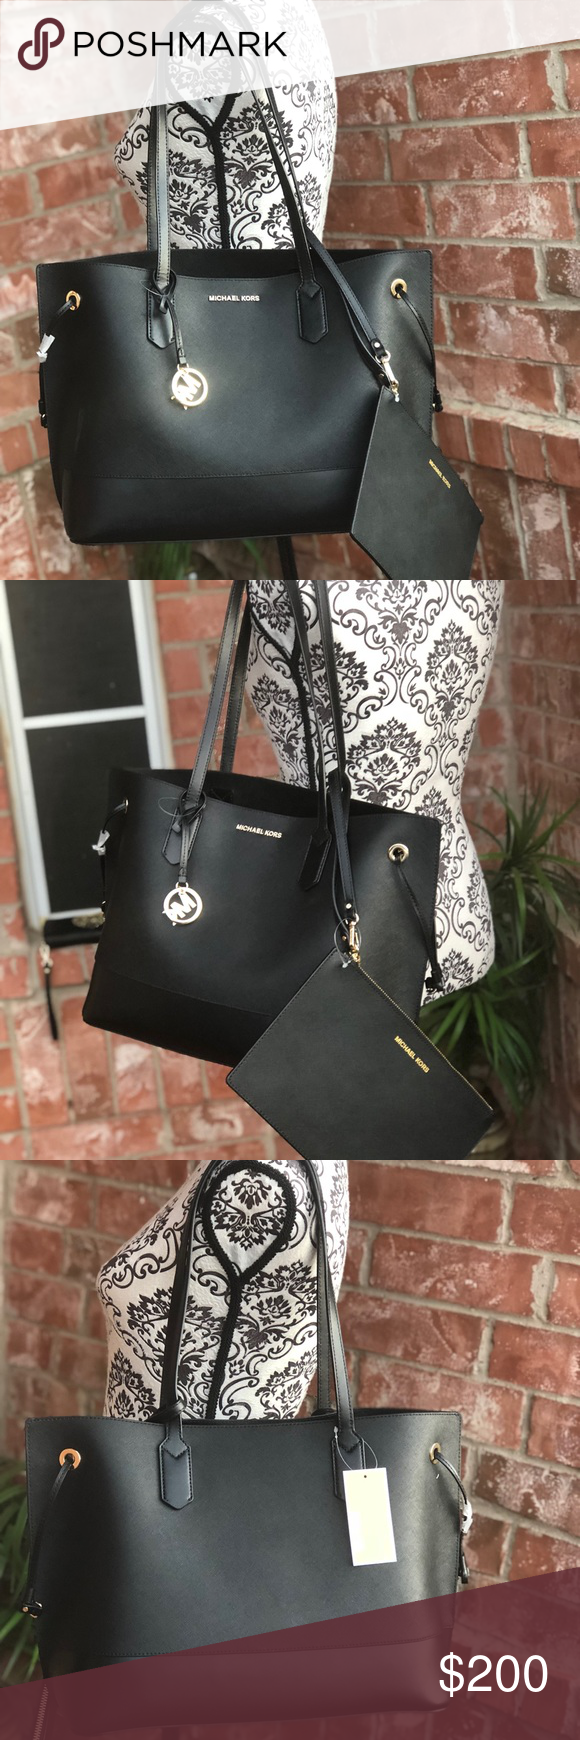 195870c763e008 Michael kors trista drawstring tote bag+wristlet Michael Kors Trista Large  Drawstring Leather Tote Handbag